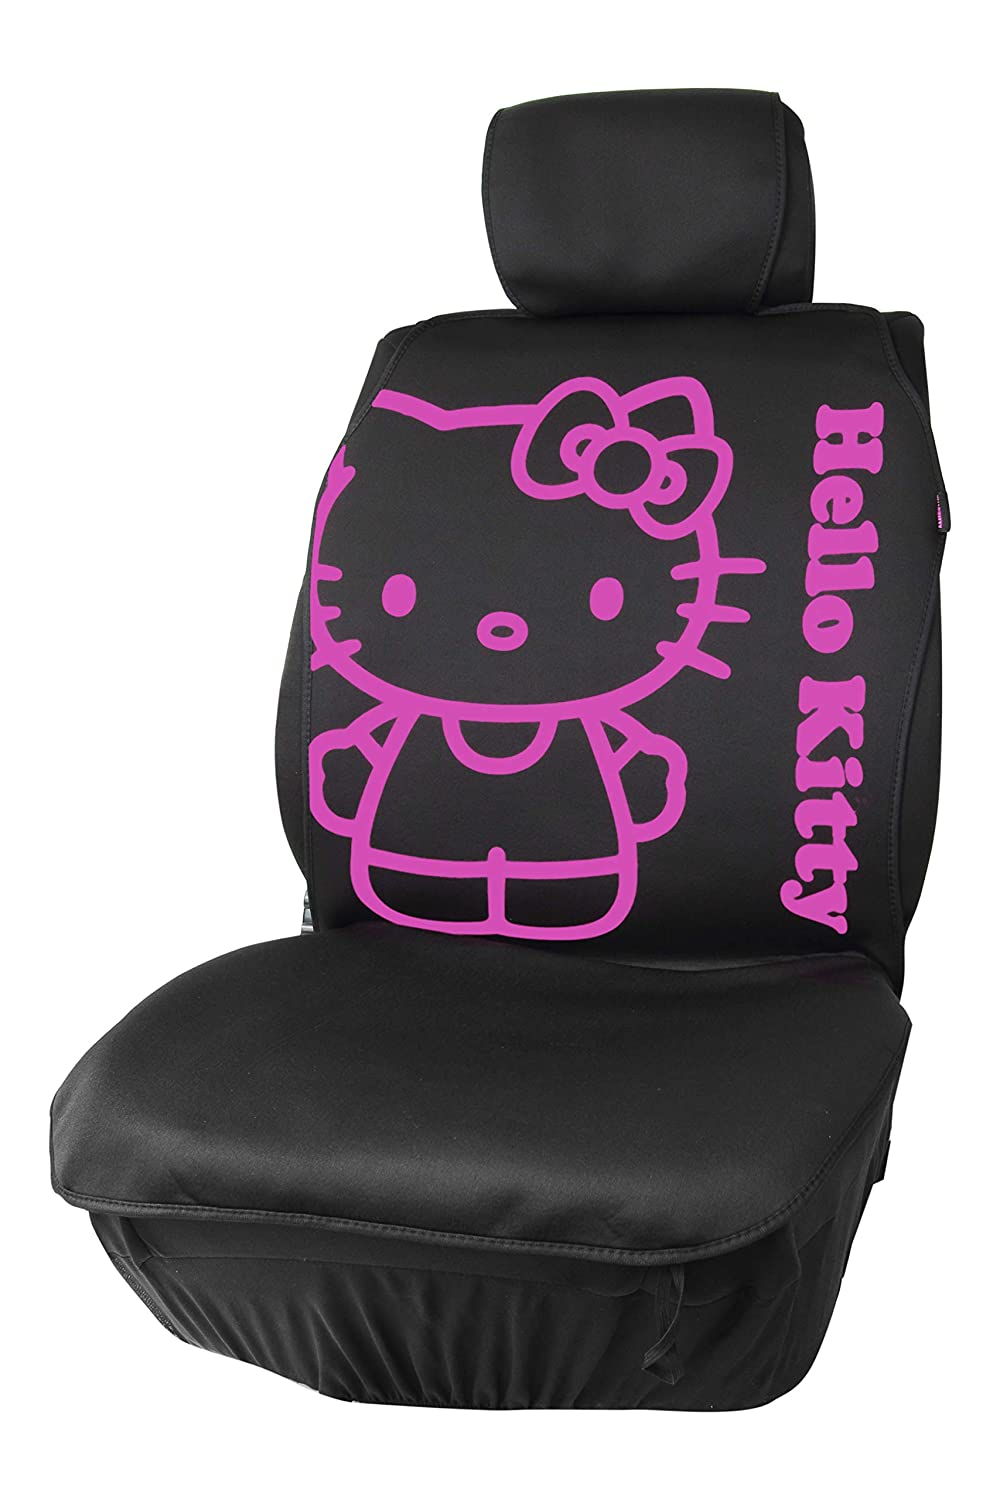 Hello Kitty KIT3017 Cubreasiento, Negro